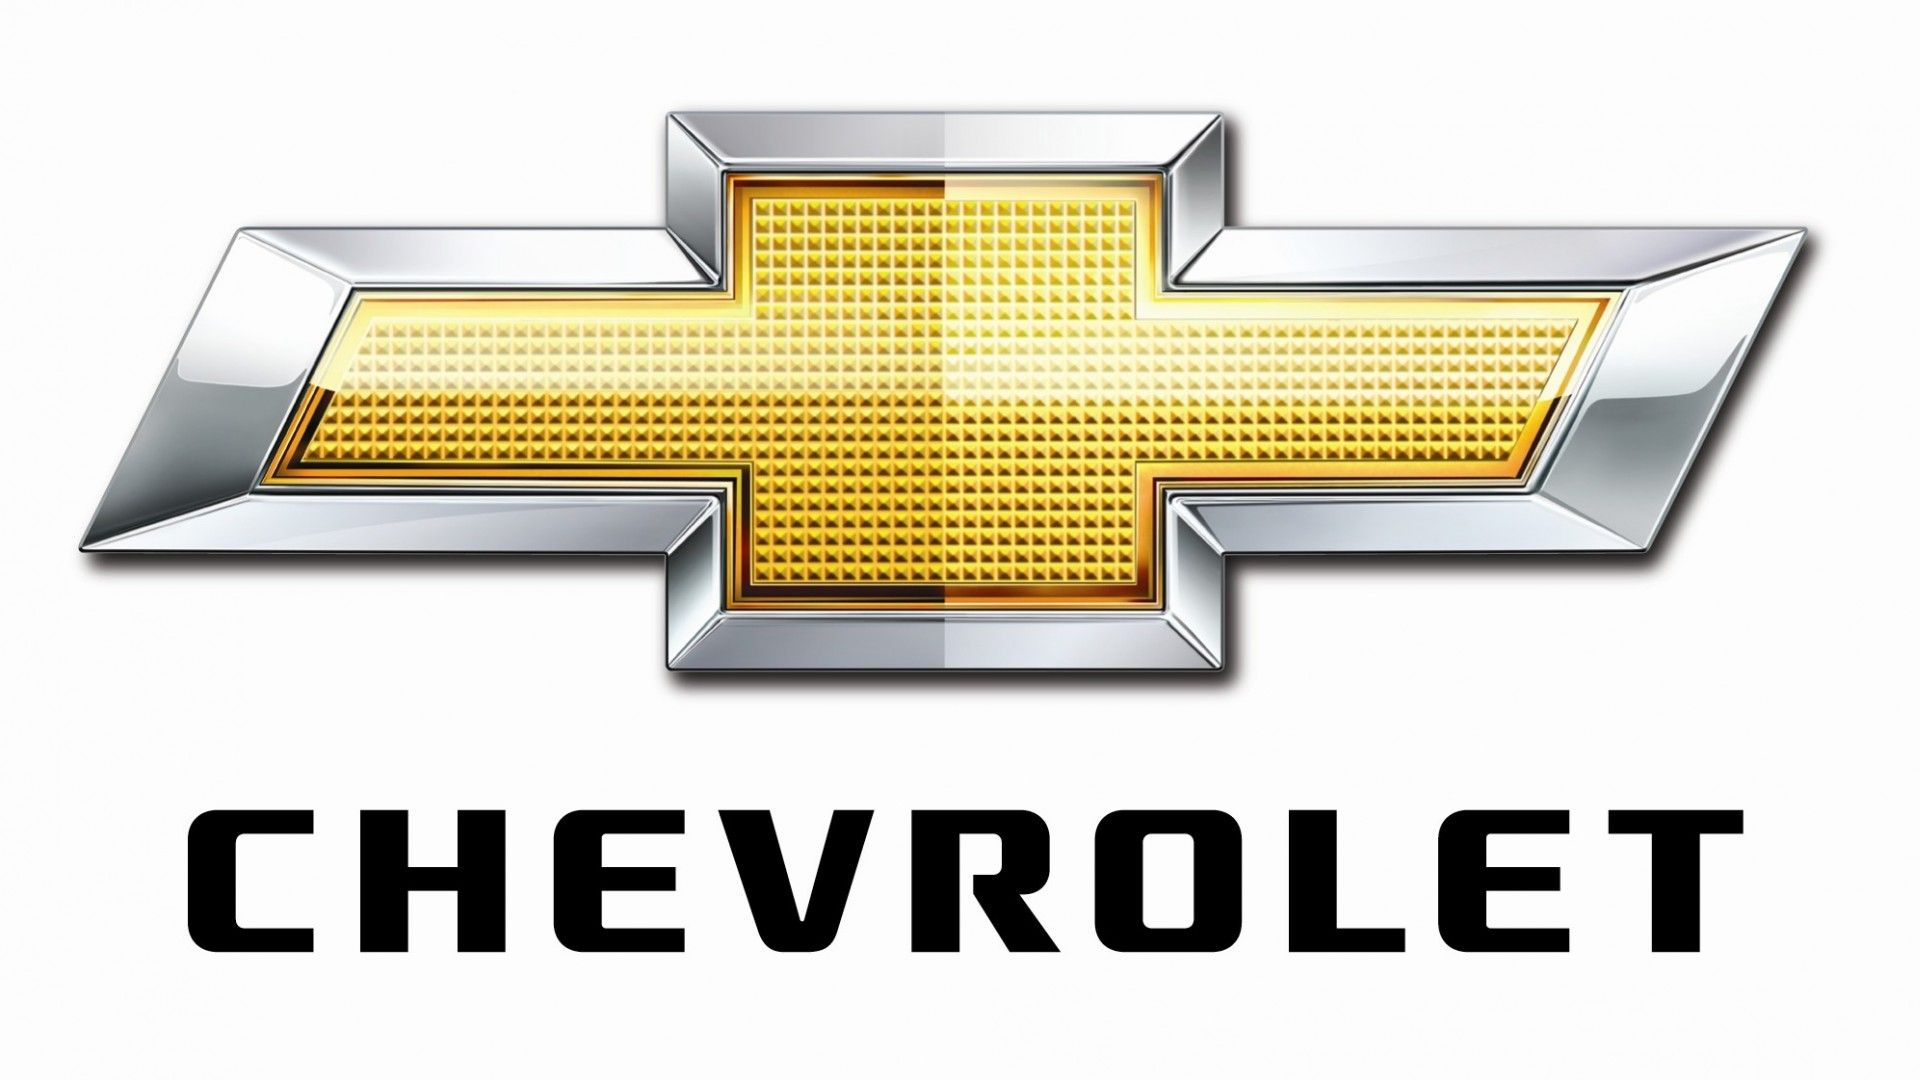 Chevrolet Logo Vector 2015 Car Wallpaper Hd Galleryautomo Chevy